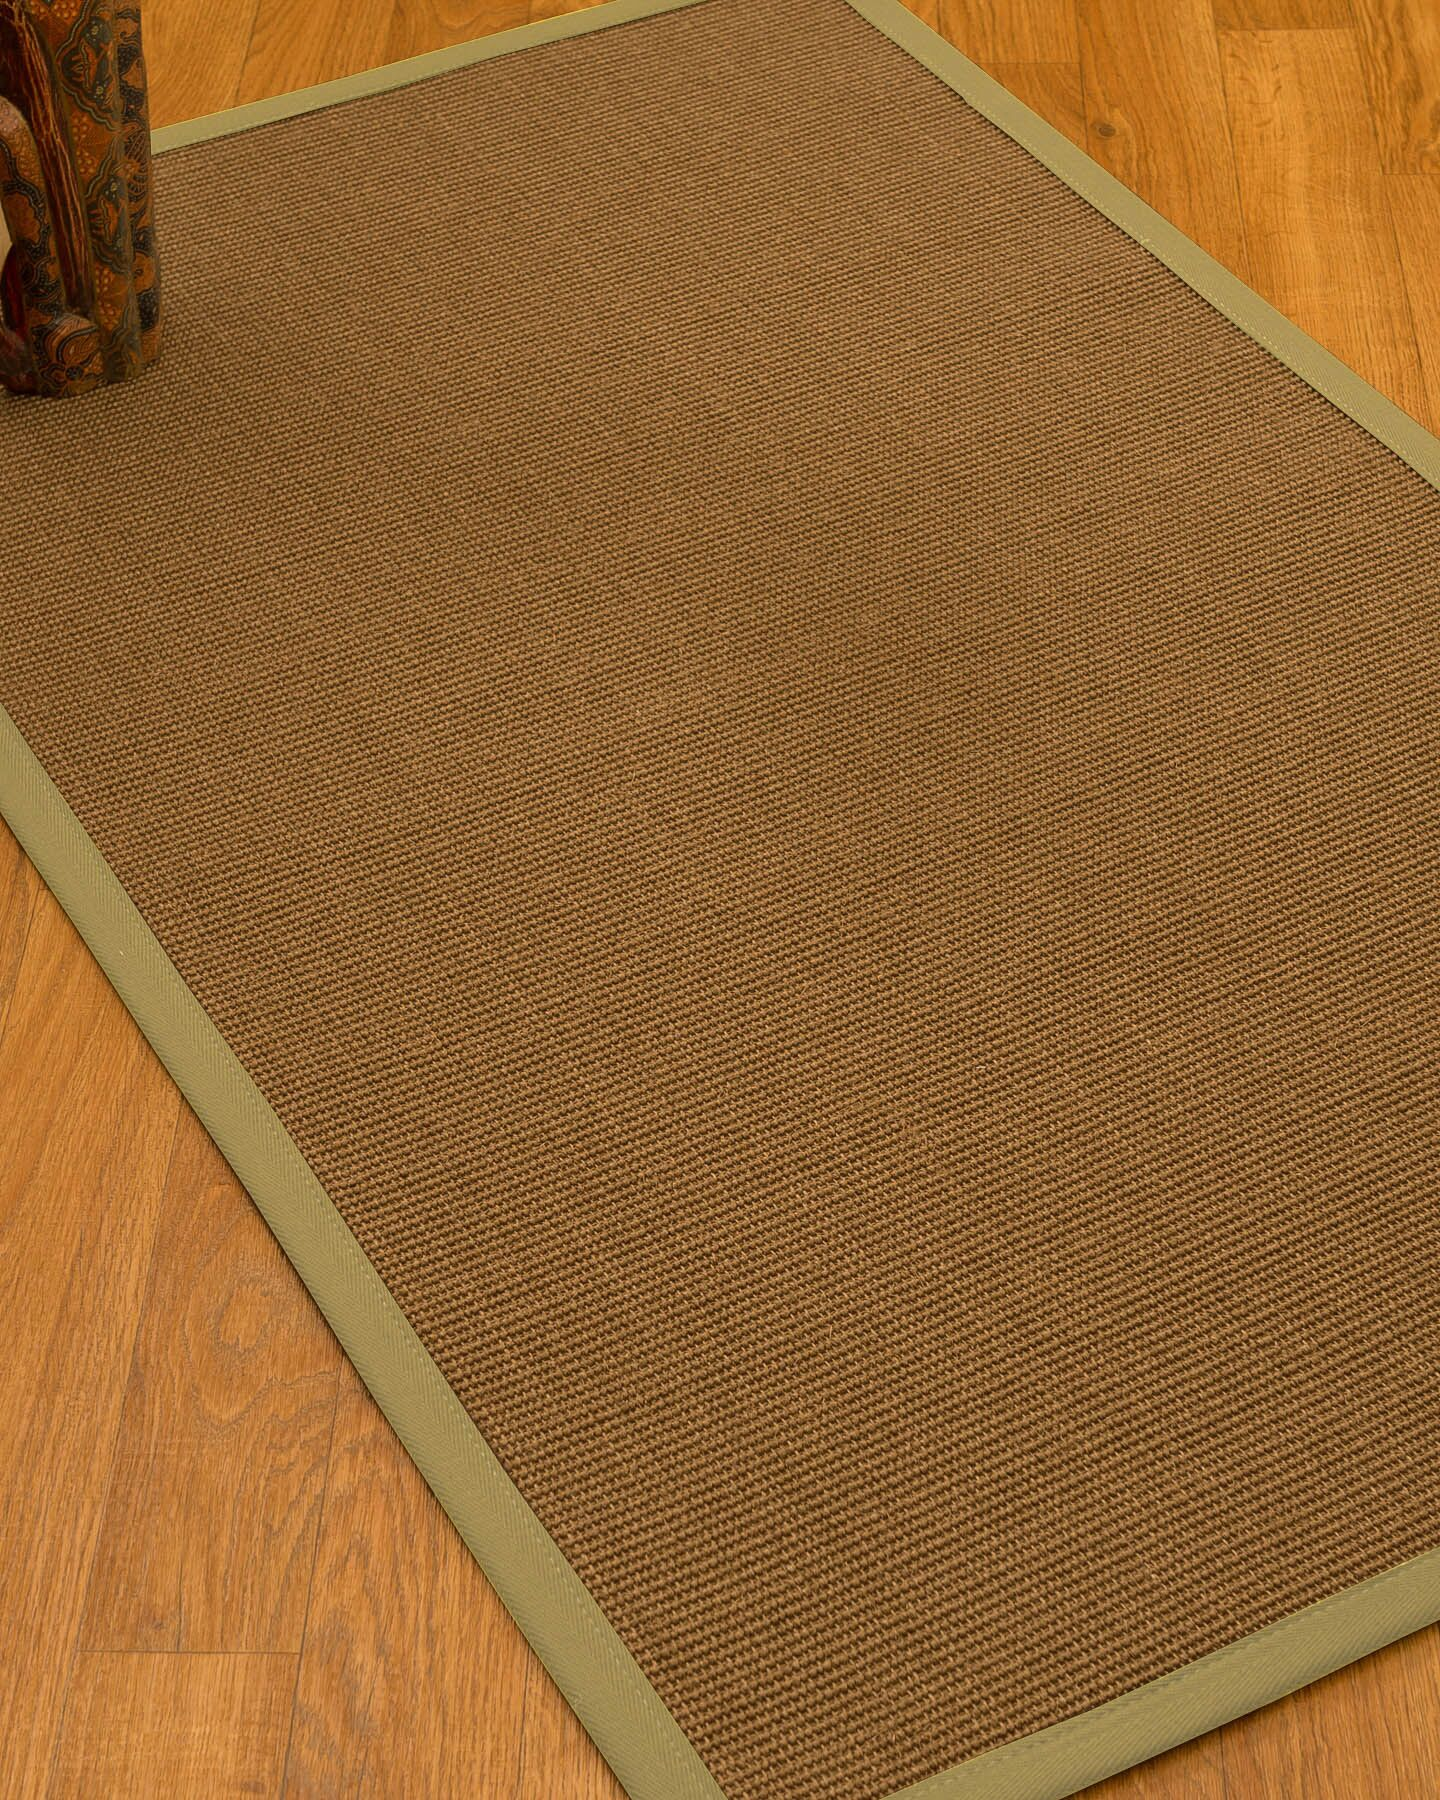 Huntwood Border Hand-Woven Brown/Sand Area Rug Rug Pad Included: No, Rug Size: Rectangle 3' x 5'